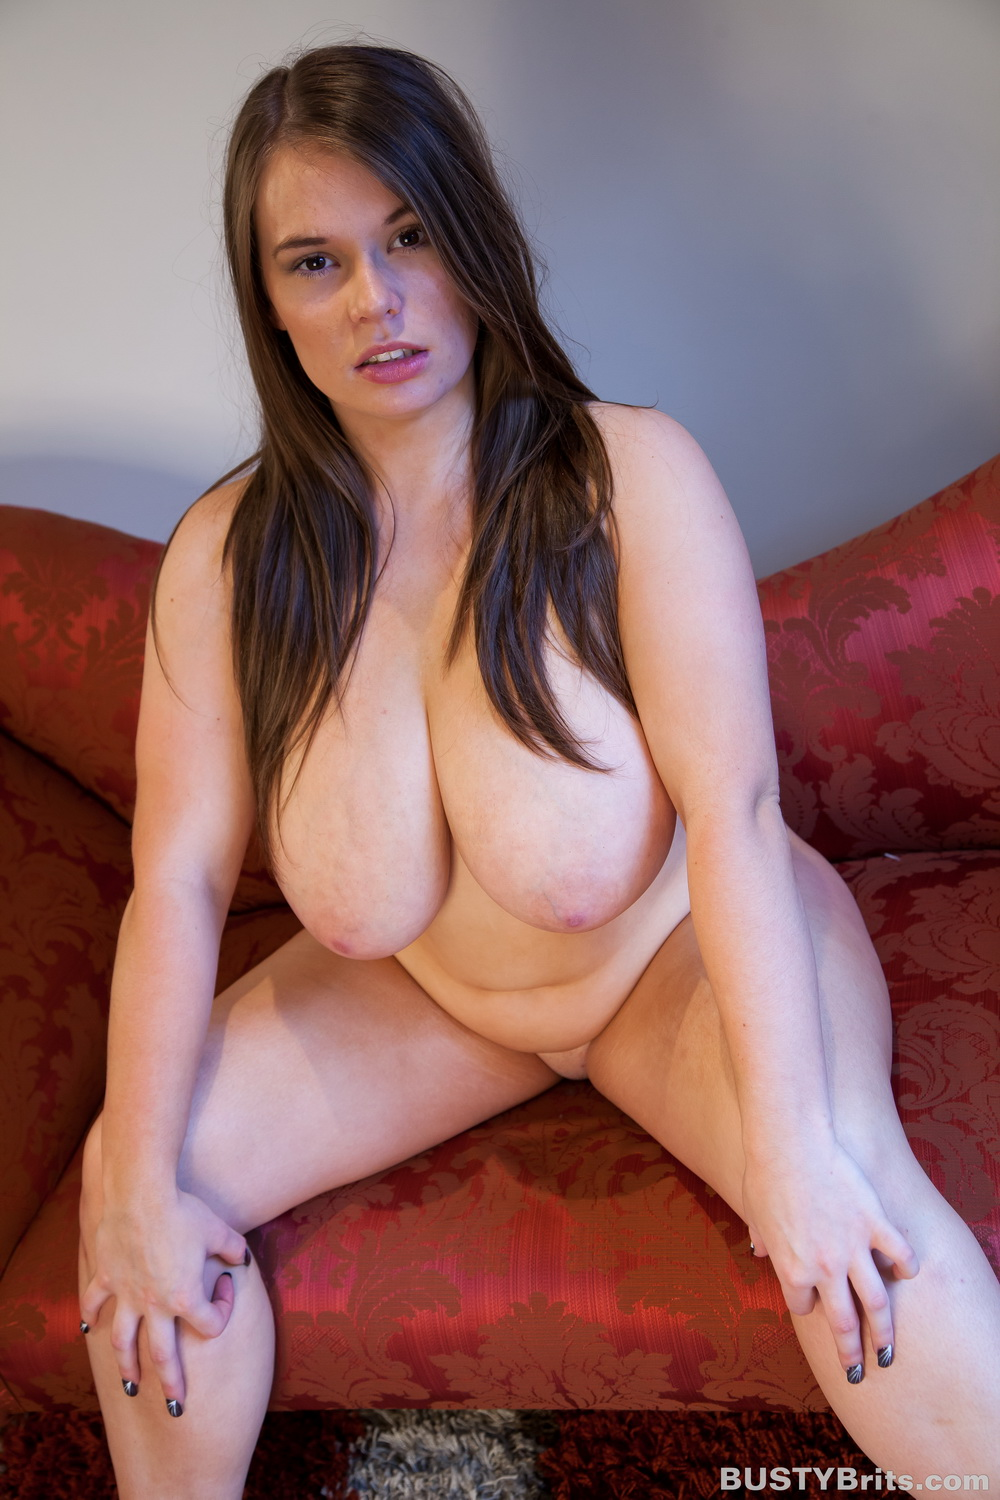 Busty britain pussy